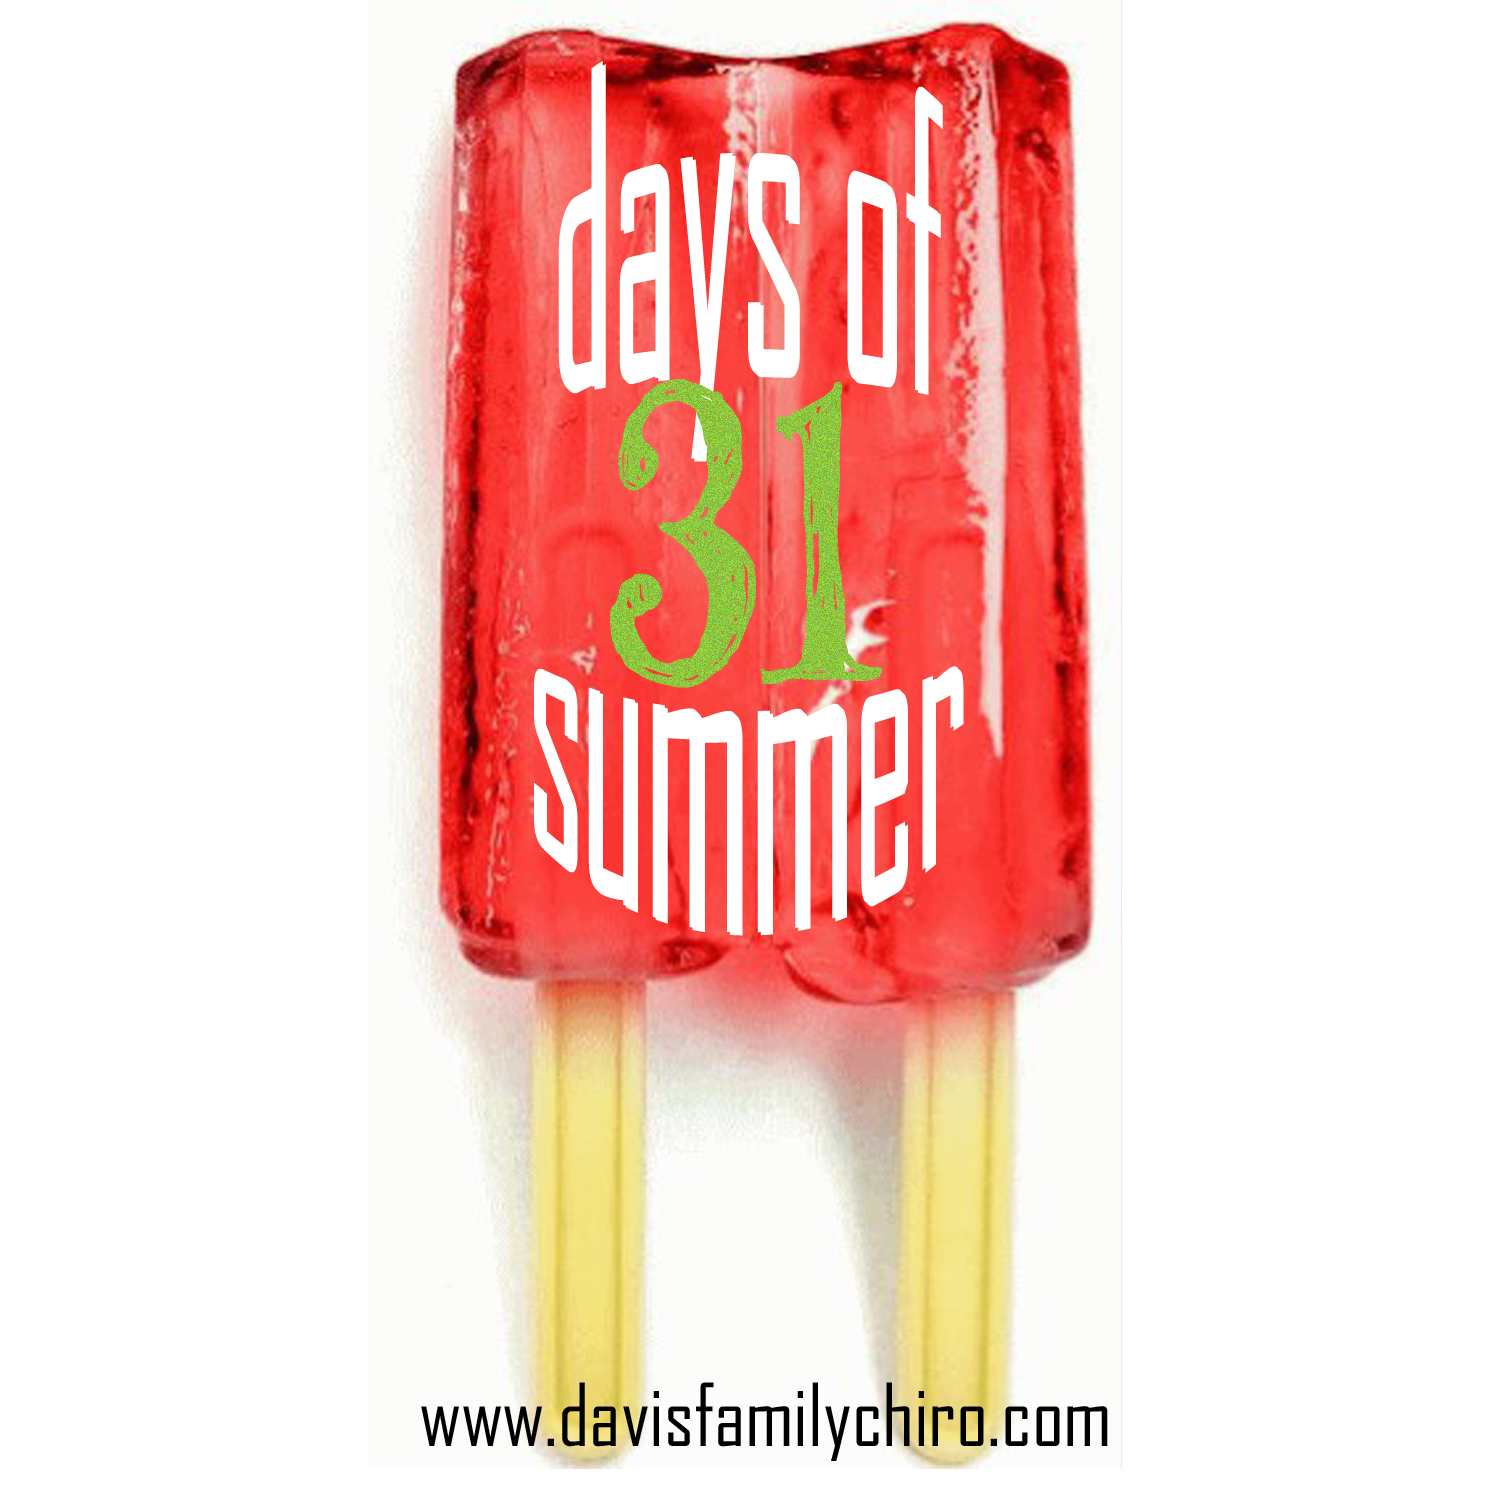 ... : Day 21: Keep 'Cool' With Homemade Popsicles (Second Edition